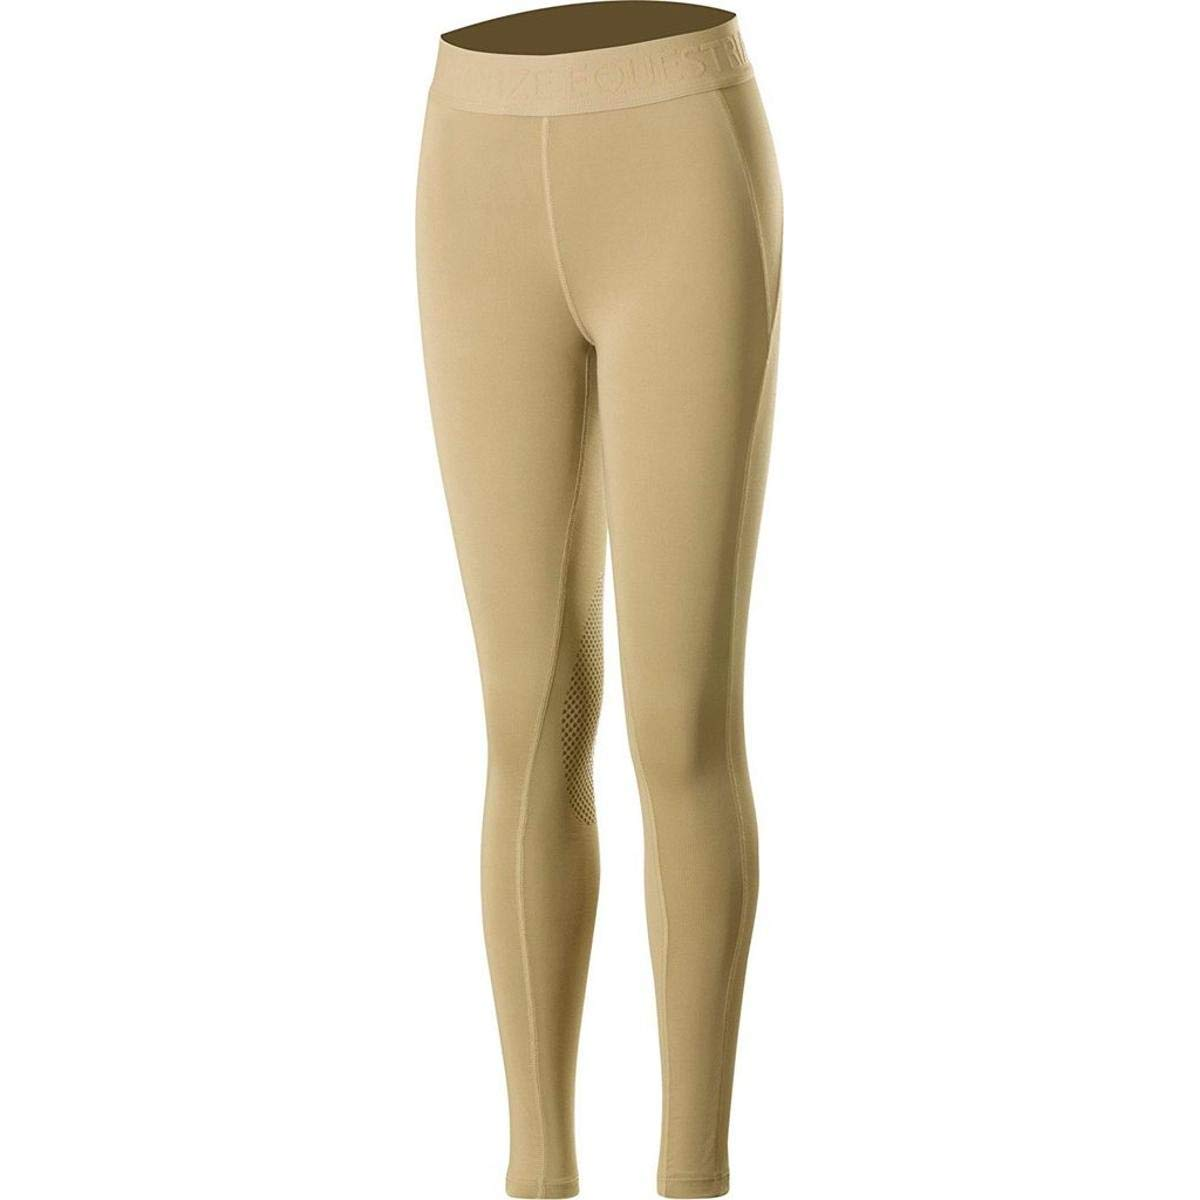 HORZE Elsa Kids Silicone Knee Patch Tights - Tan - X Small